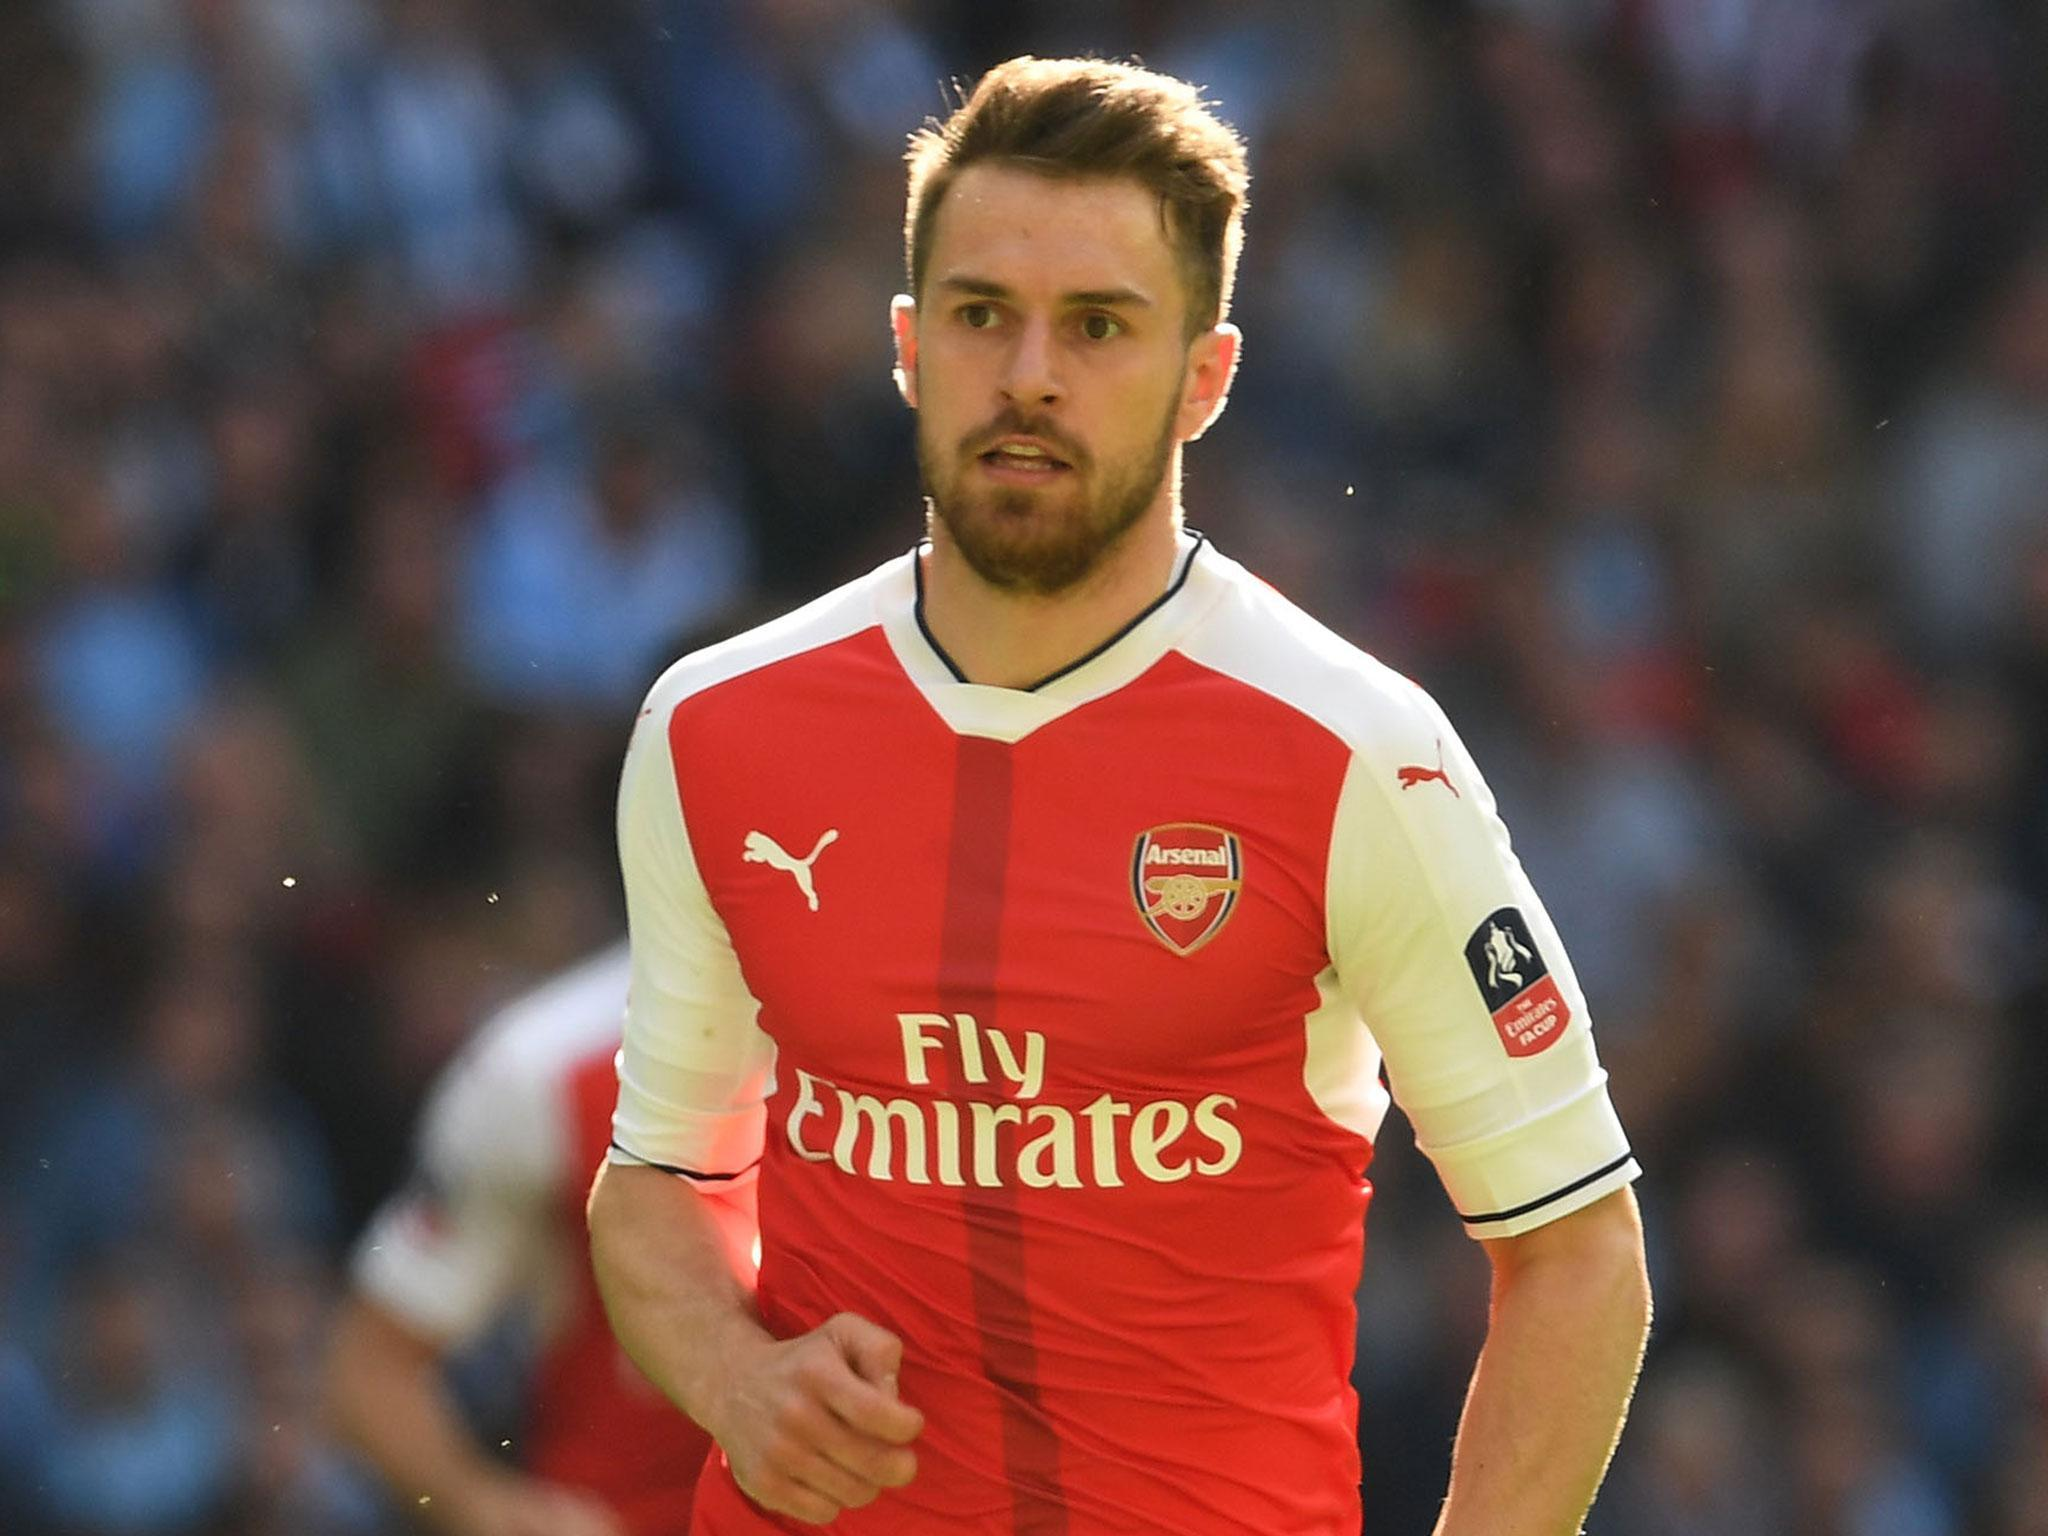 Aaron Ramsey tells Arsenal to go and win the FA Cup for Arsene